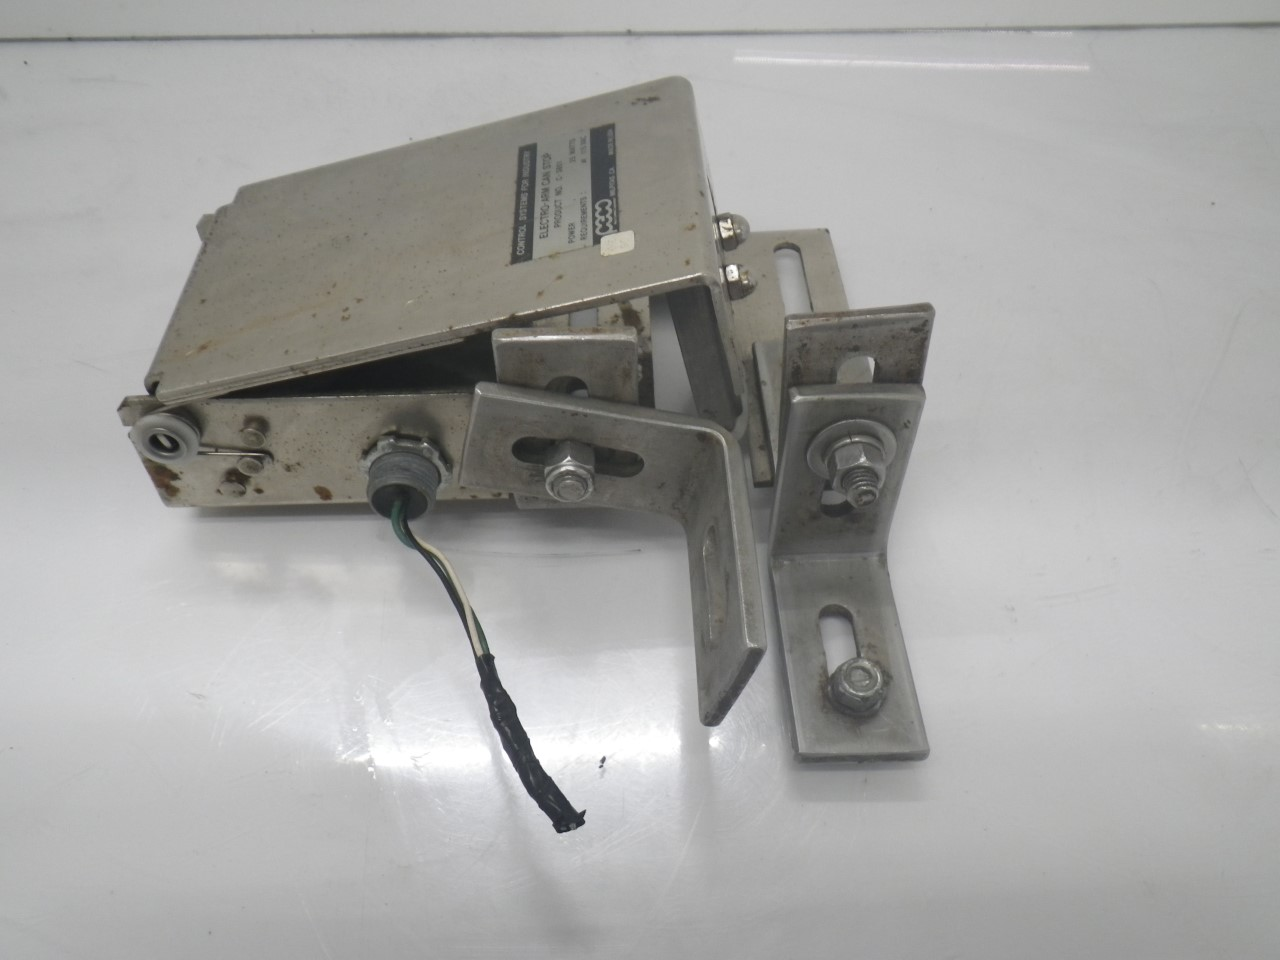 IMGP6937C-3801 C-3800A 3012Peco Electro-arm Controls forPackage Inspection(Used Tested) (7)